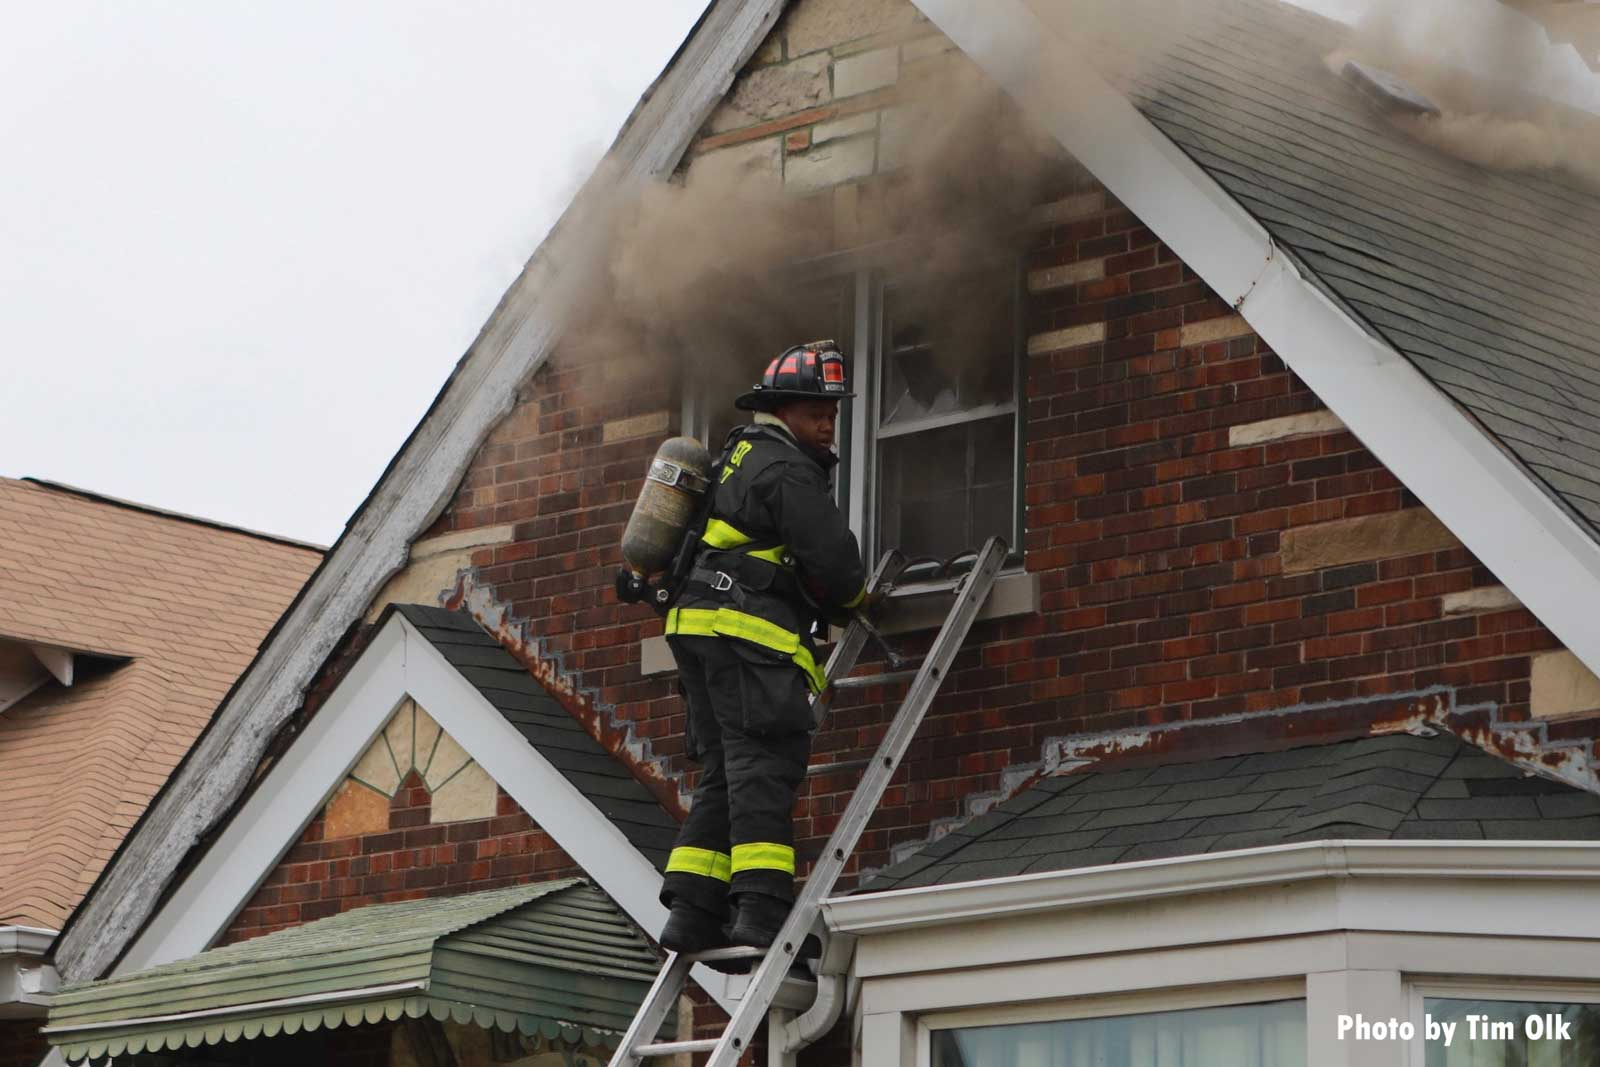 Chicago firefighter on a ladder at the window with smoke condition